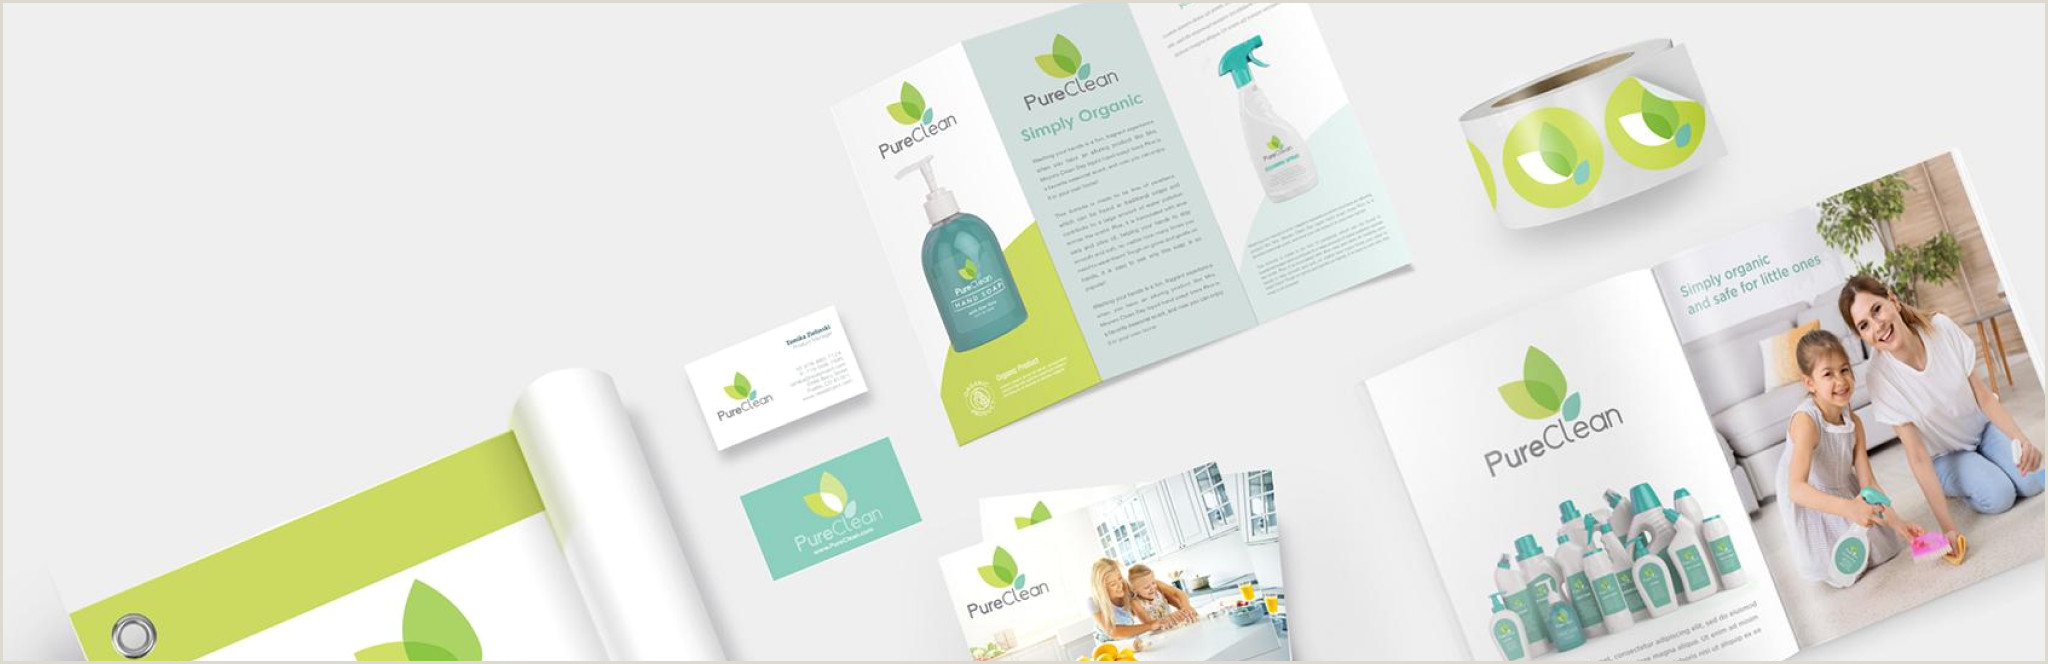 Best Place To Have Business Cards Made Printplace High Quality Line Printing Services